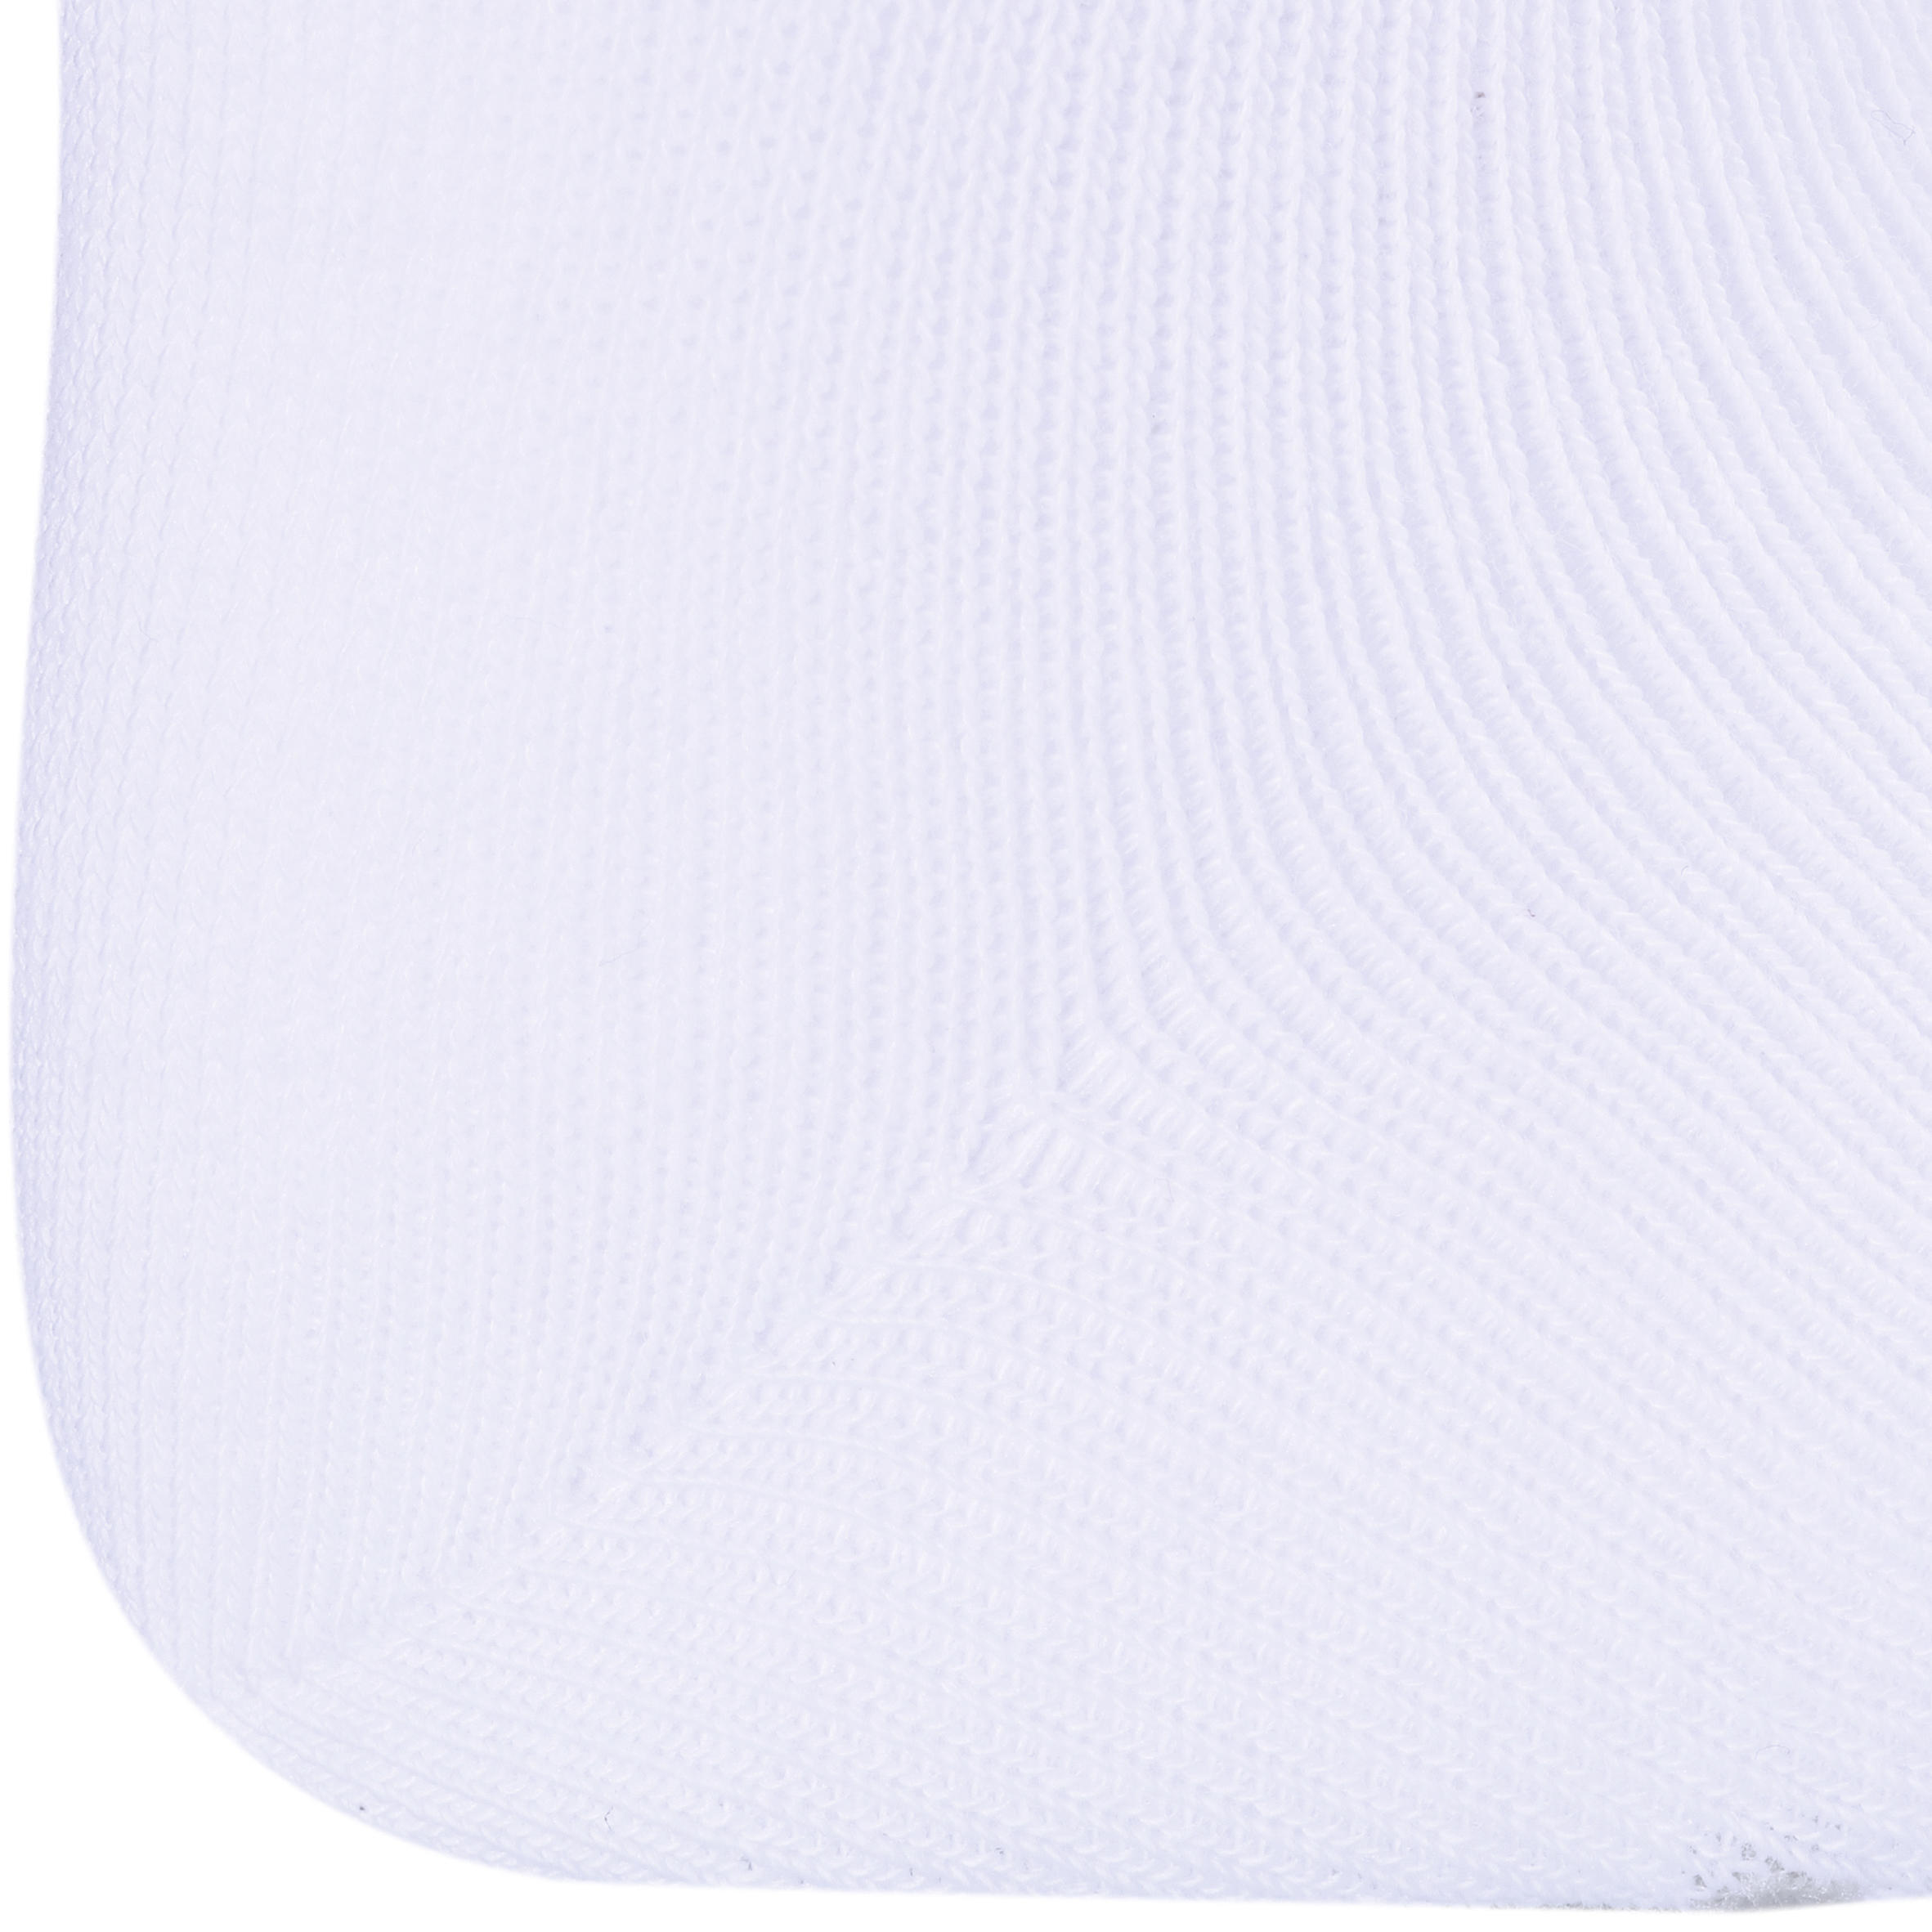 100 Mid-Length Gym Socks Twin-Pack - White